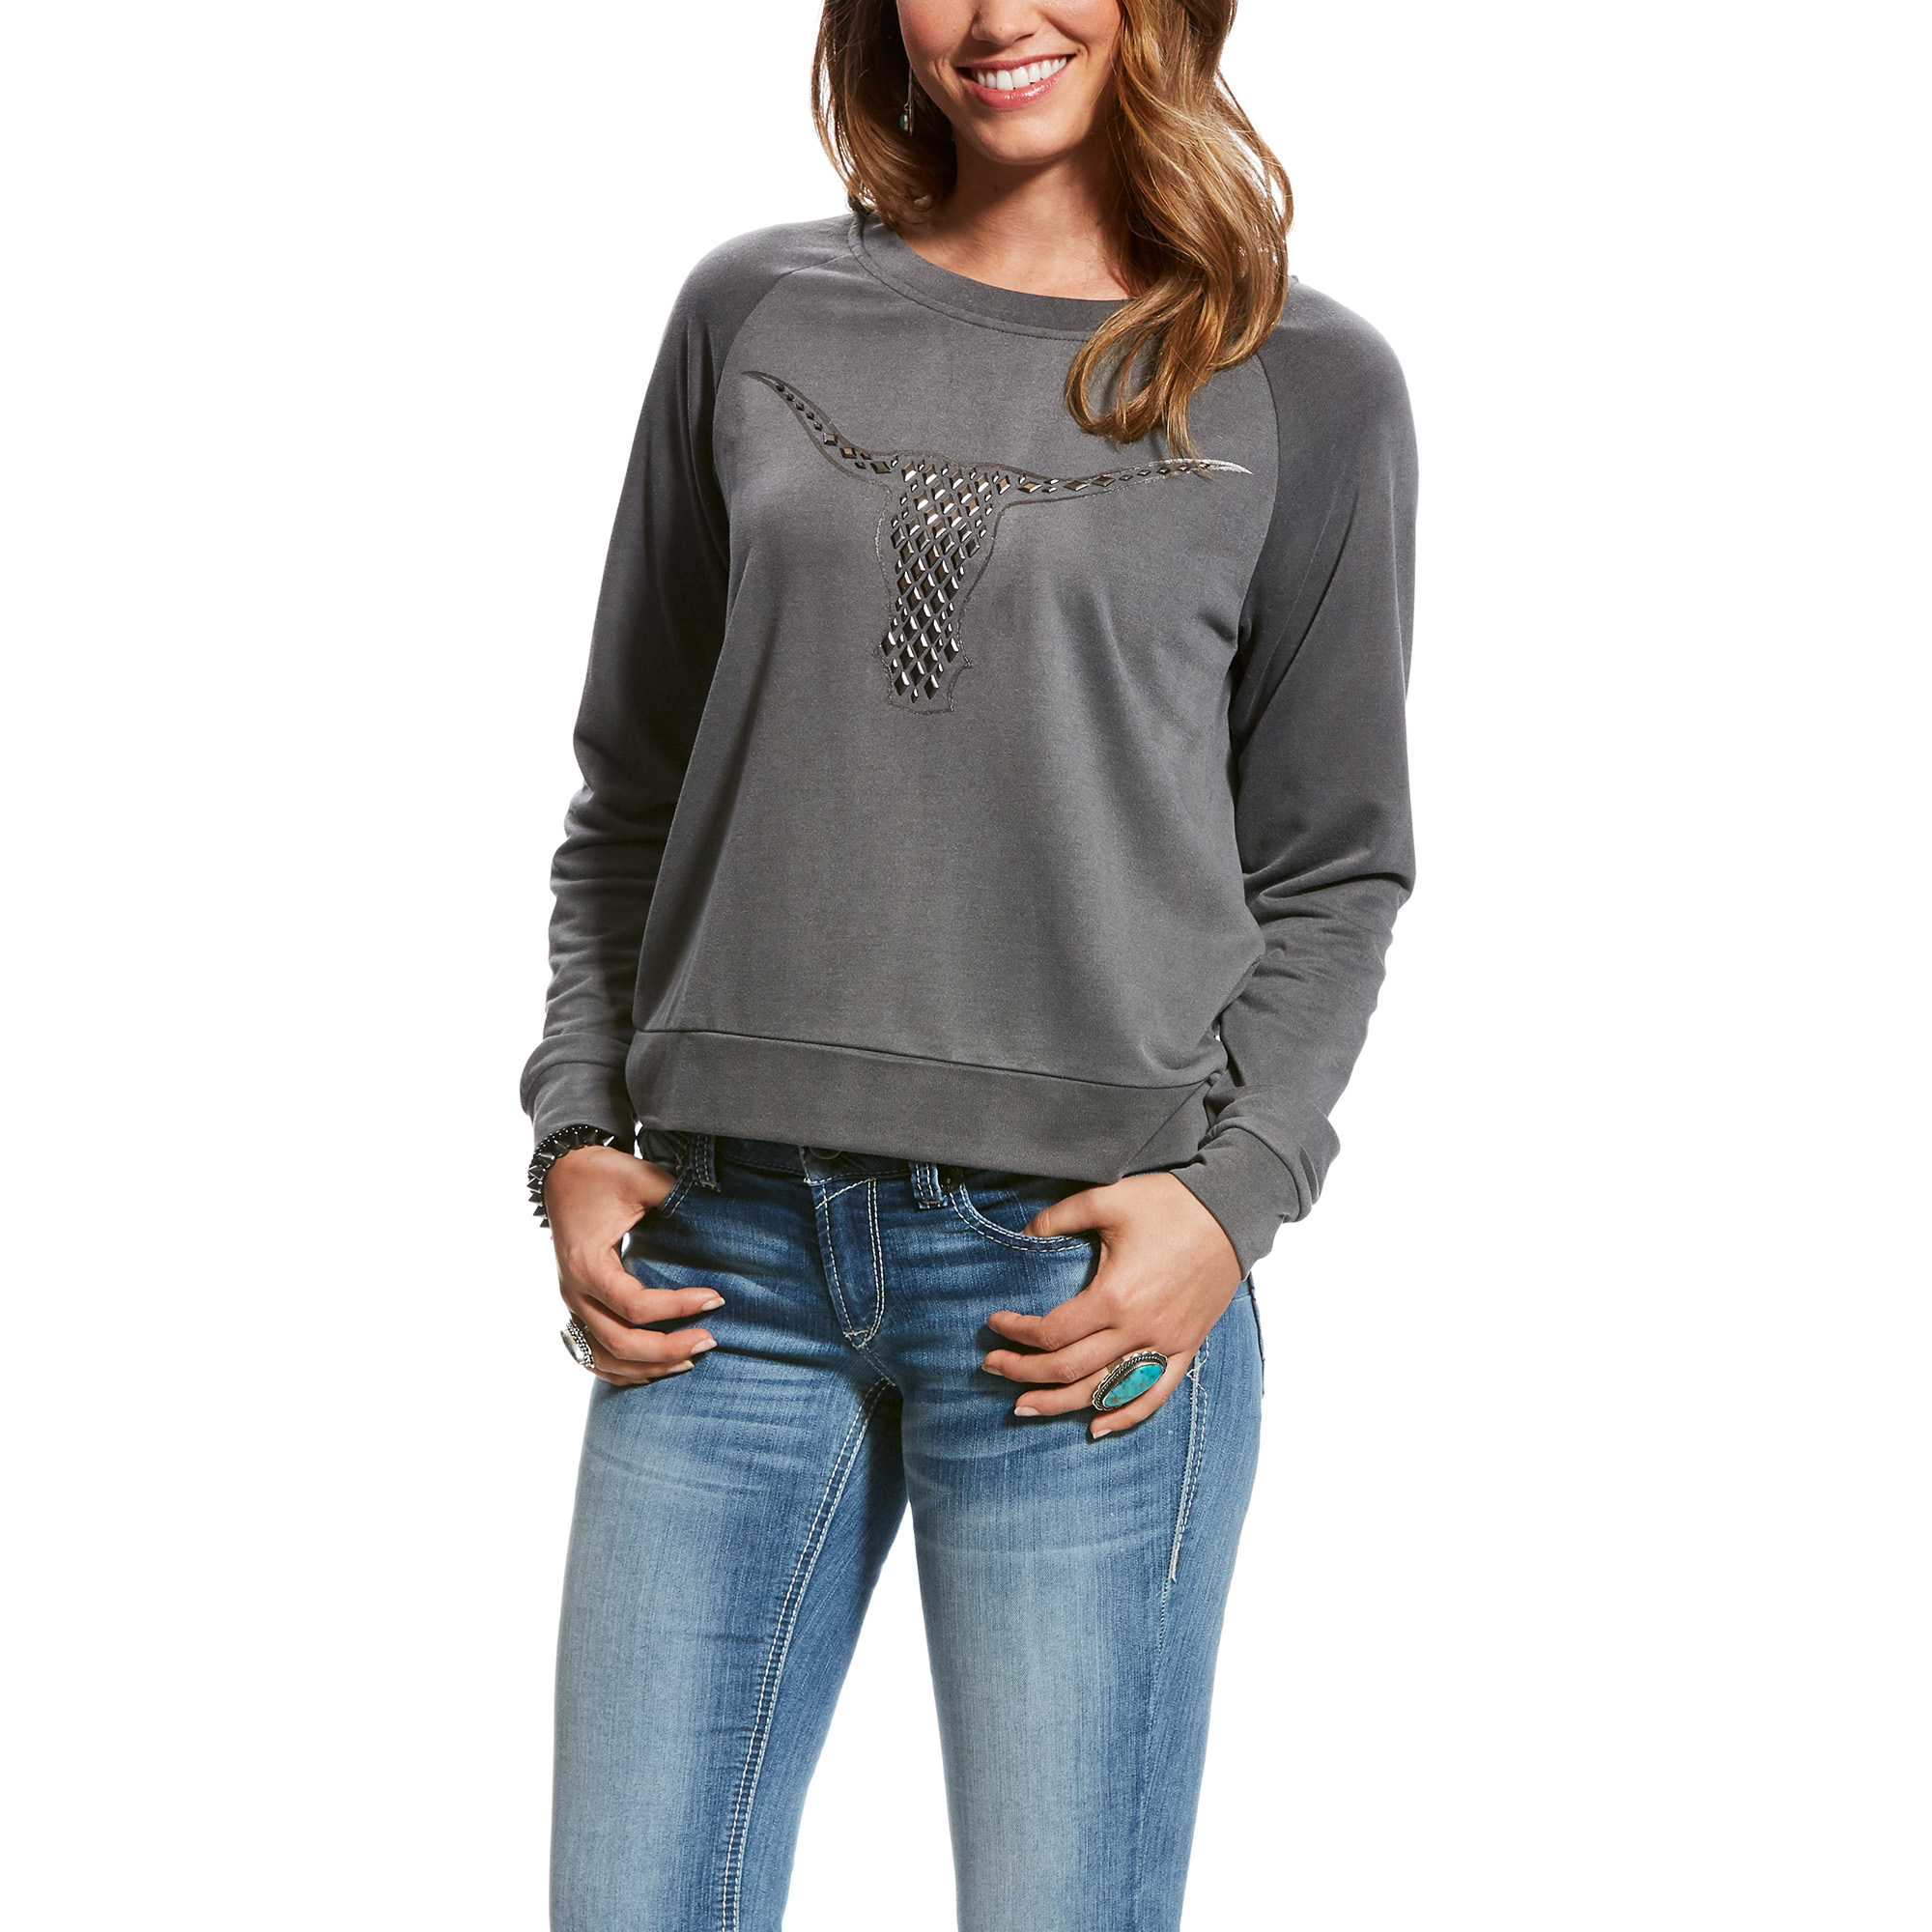 Agnes Top from Ariat